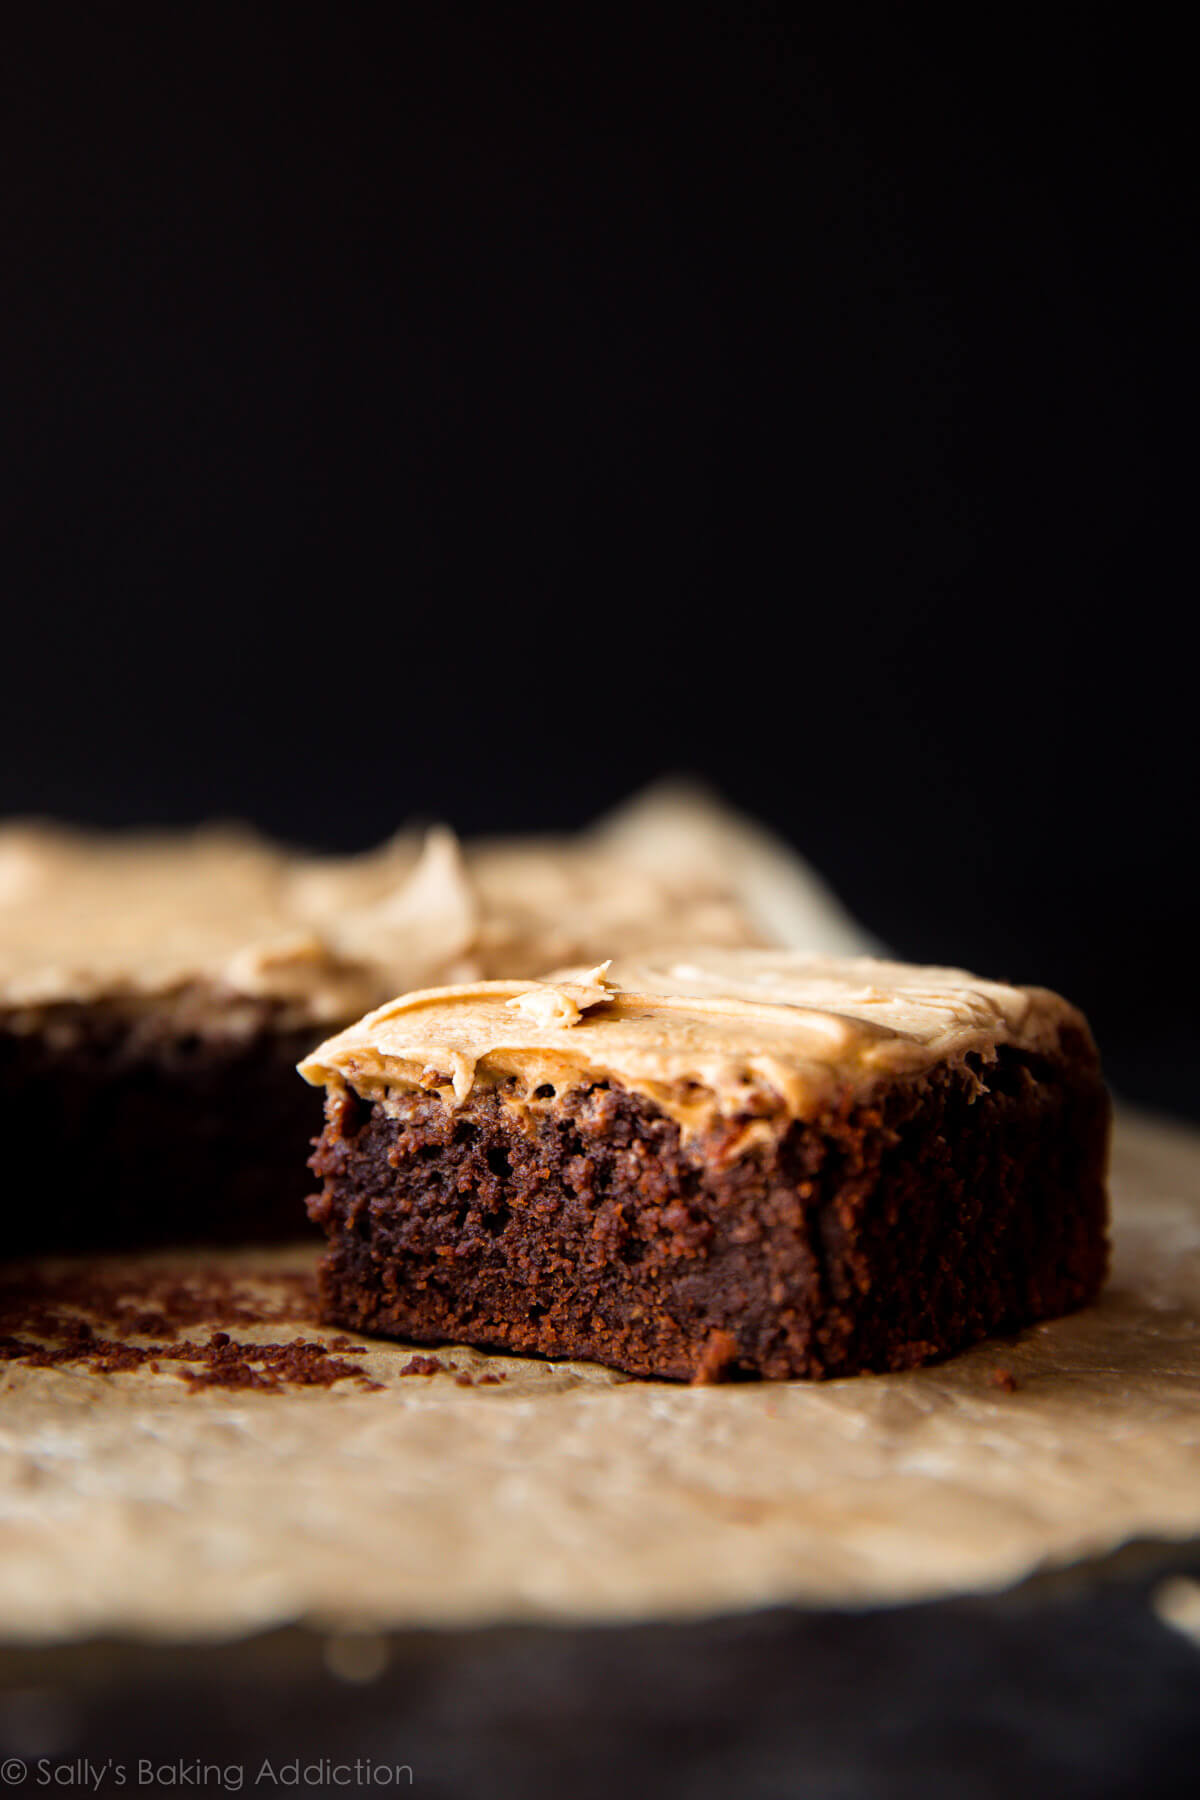 These Guinness Brownies are made from reduced Guinness Stout. They're fudgy, rich, and topped with espresso powder and Guinness infused frosting! Recipe on sallysbakingaddiction.com